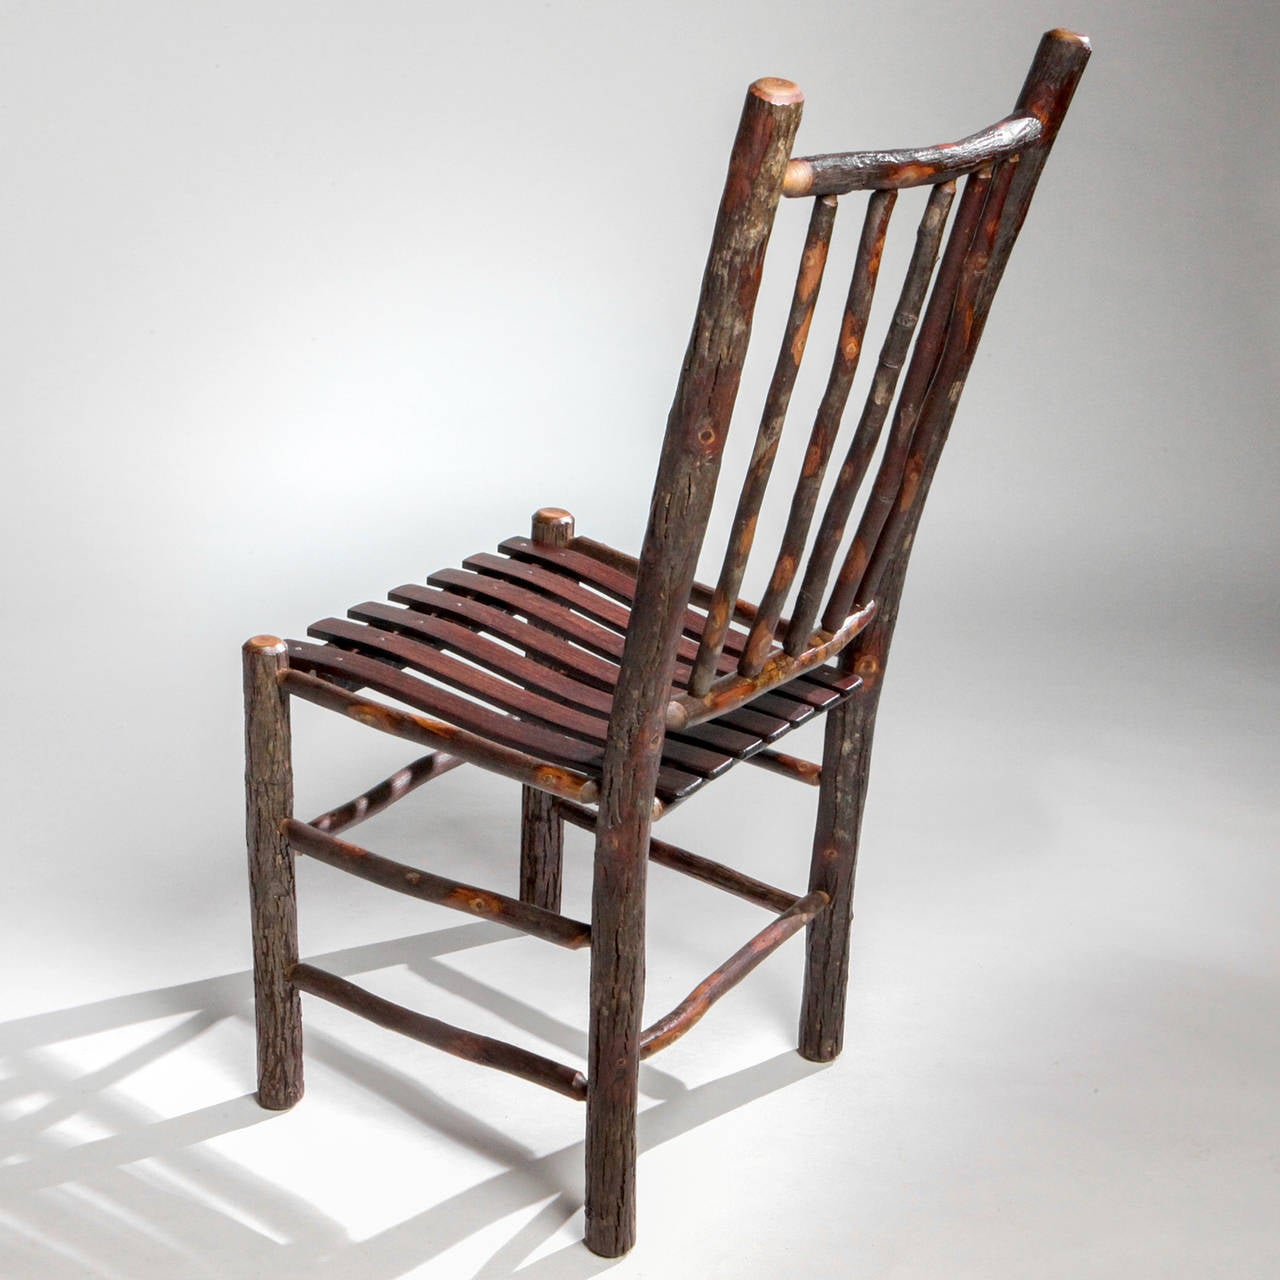 Handcrafted Adirondack hall or dining natural wood chair with spindle chair back and split wood seat.